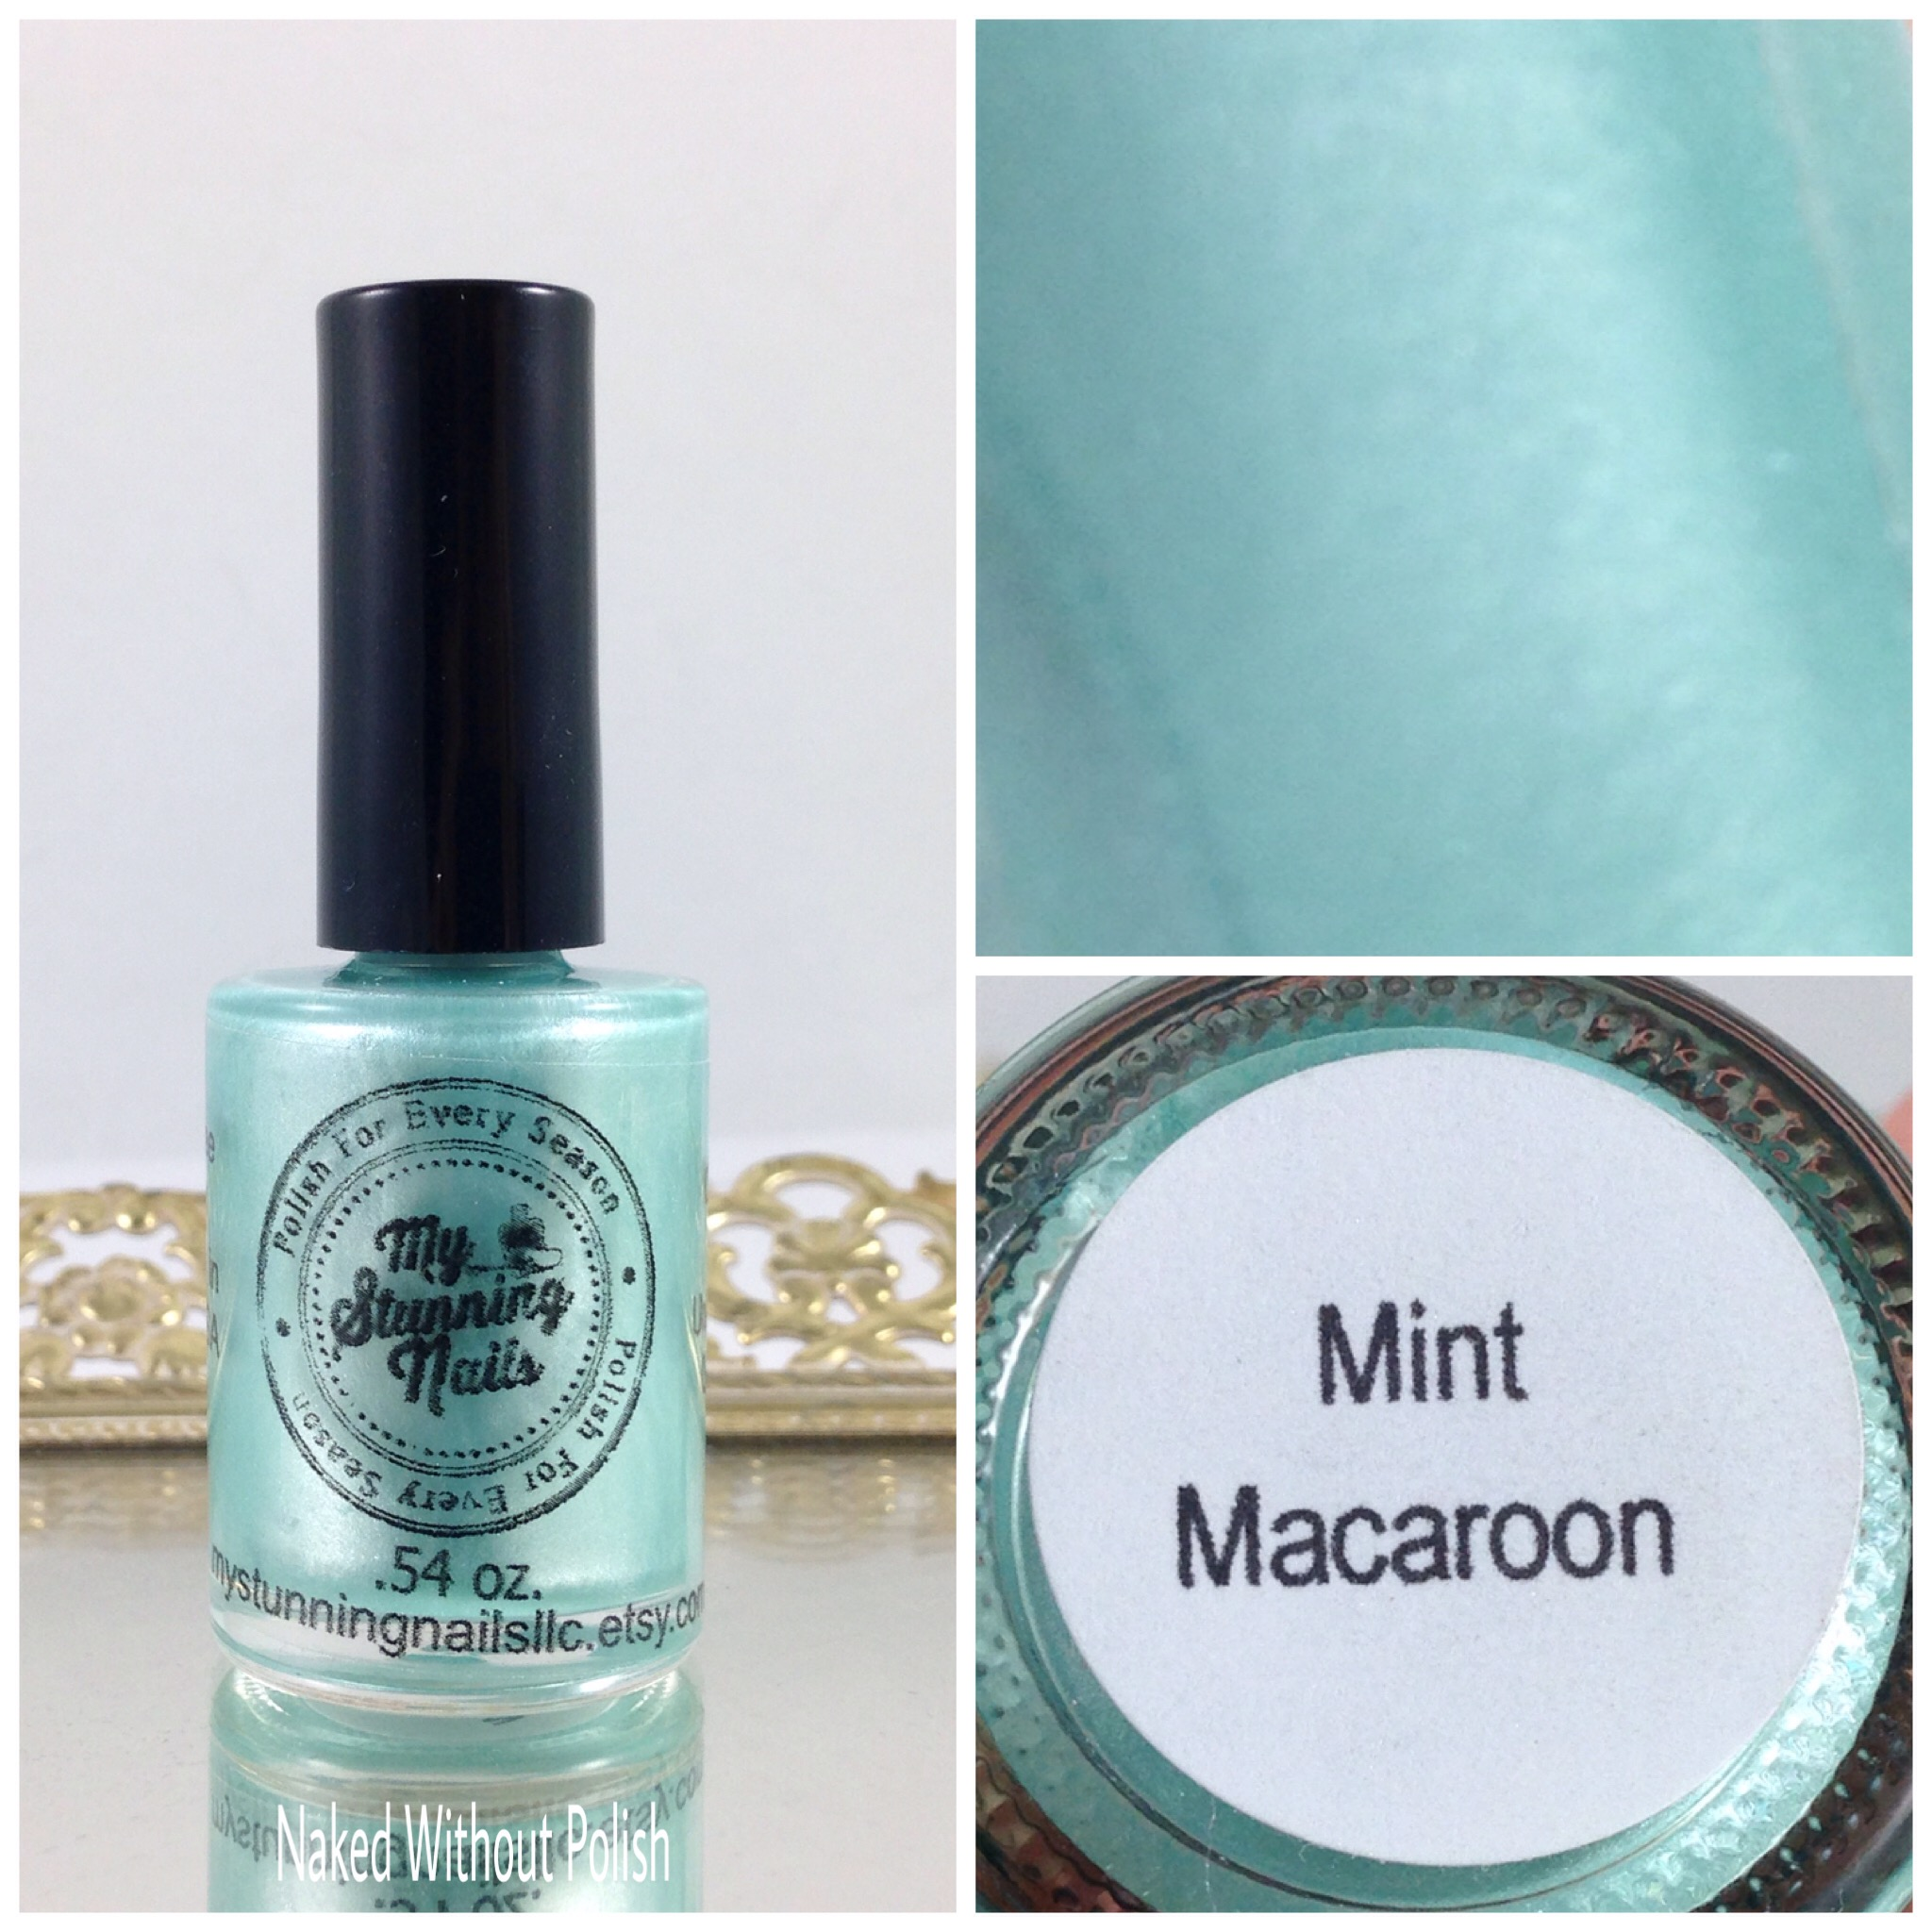 My-Stunning-Nails-Mint-Macaroon-1